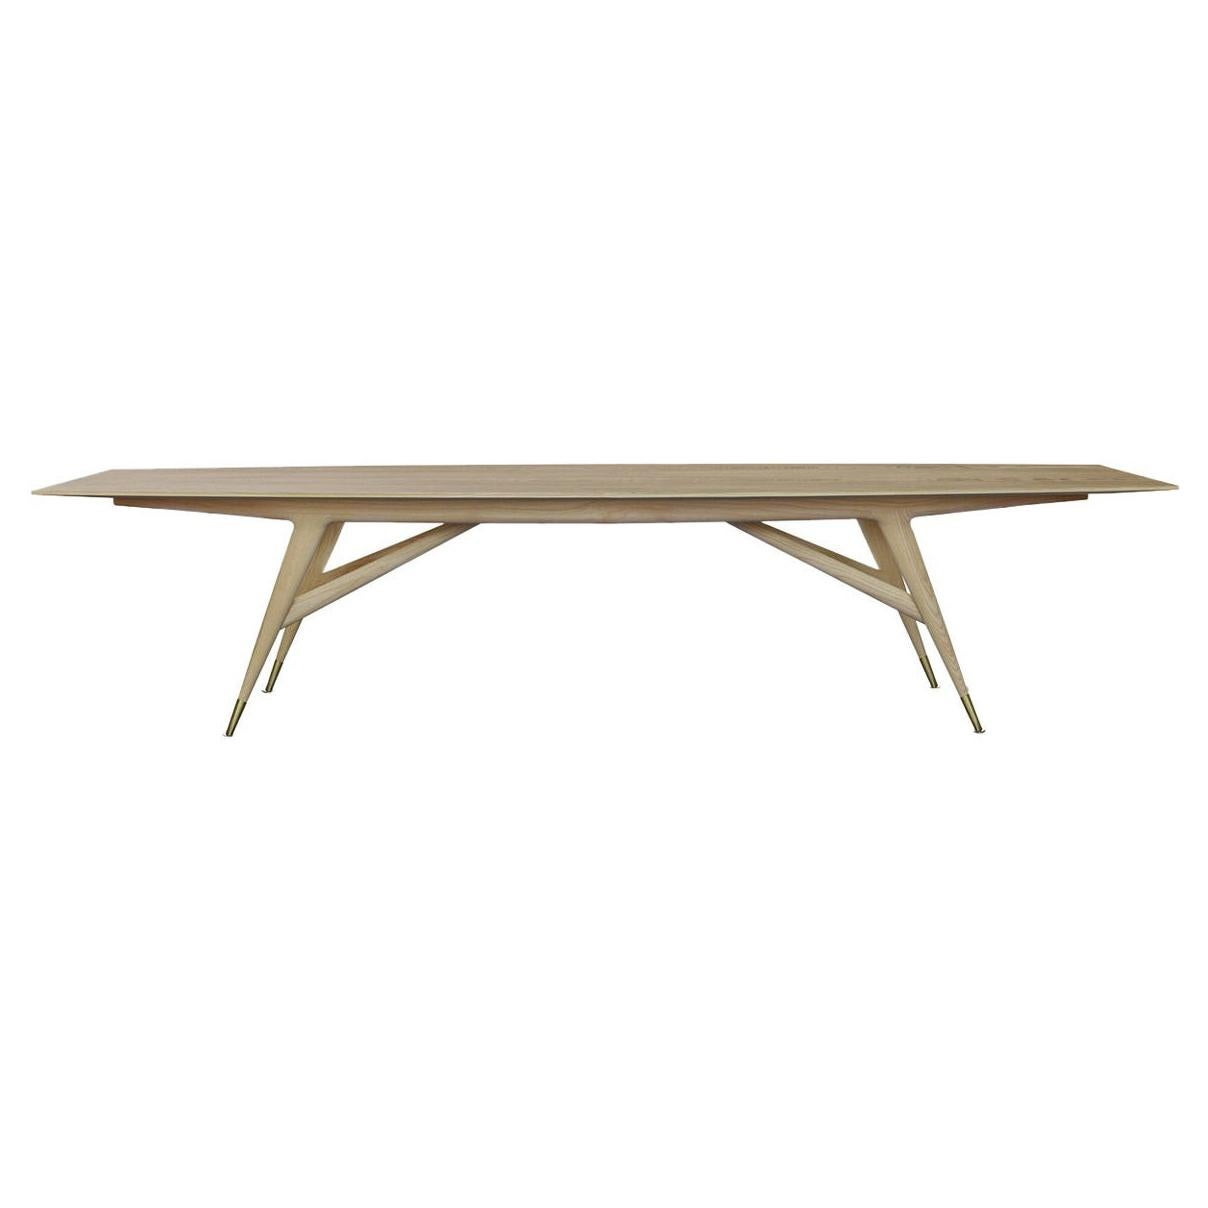 Molteni&C D.859.1A Dining or Conference Table in Natural Ash Wood by Gio Ponti